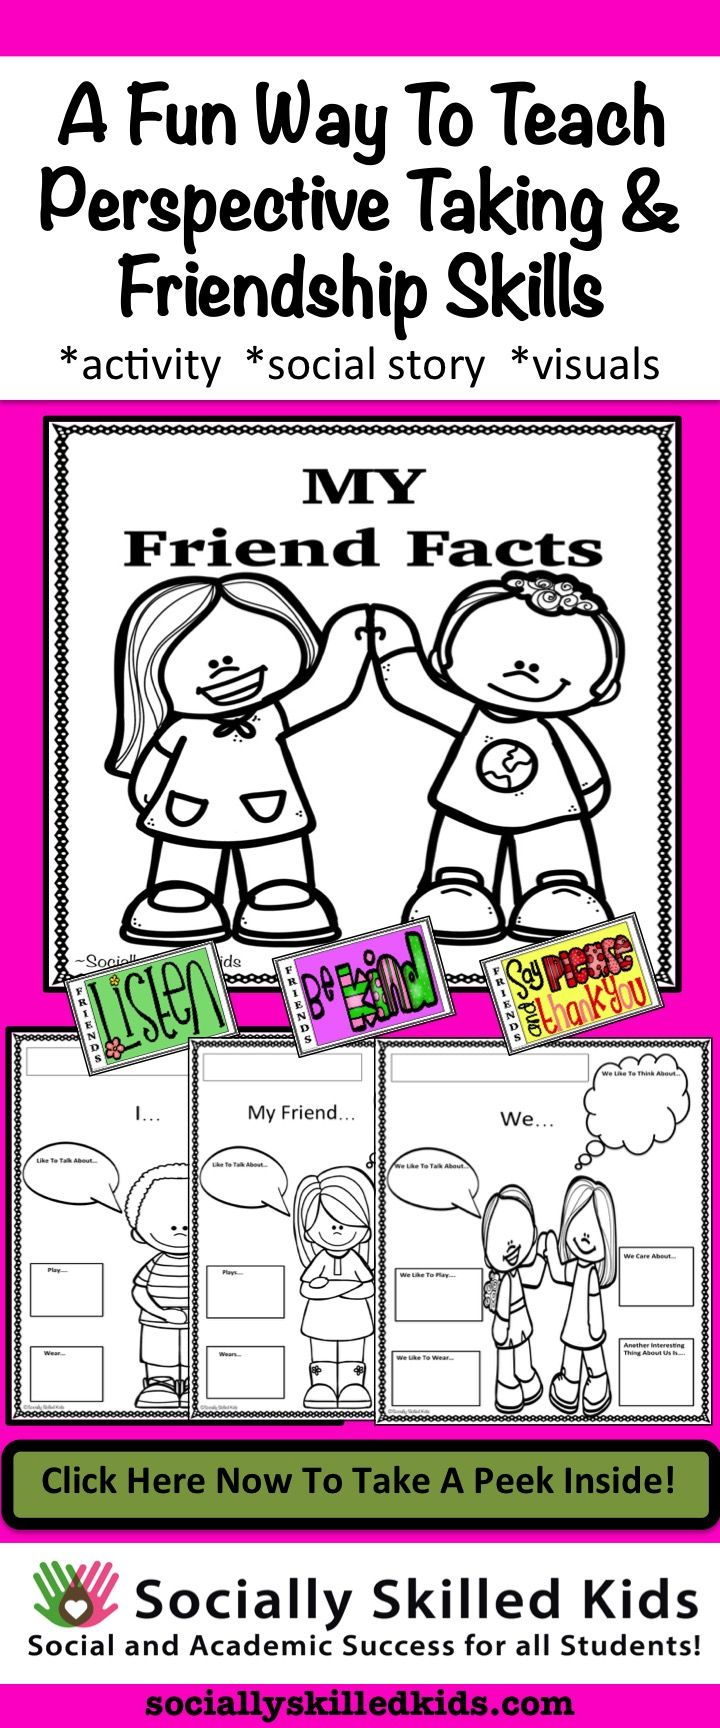 Learning to think about others is a great way to improve friendships. This fun friendship activity, social story and visuals will help your students improve their ability to think about their friends.